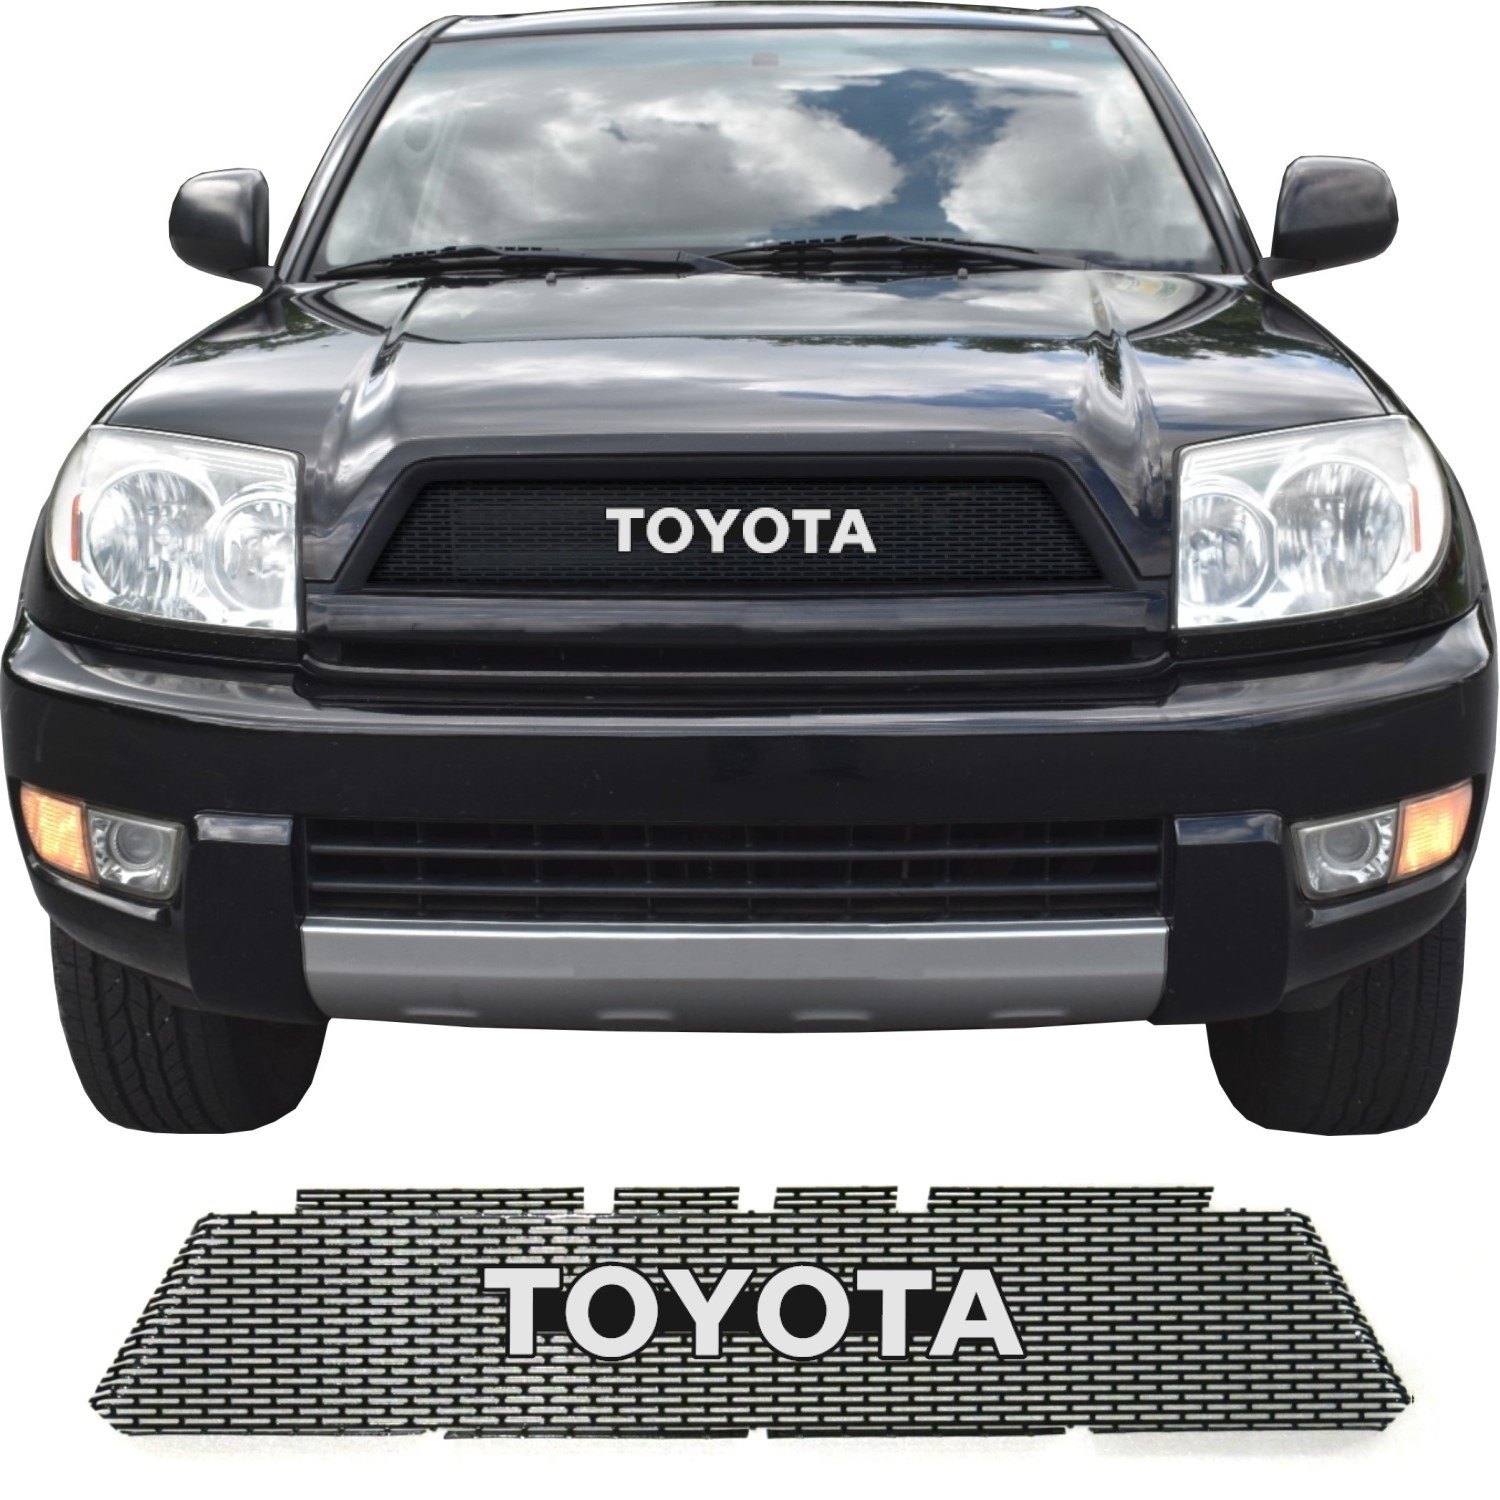 2003-05 Toyota 4Runner Grill Mesh with Toyota Emblem